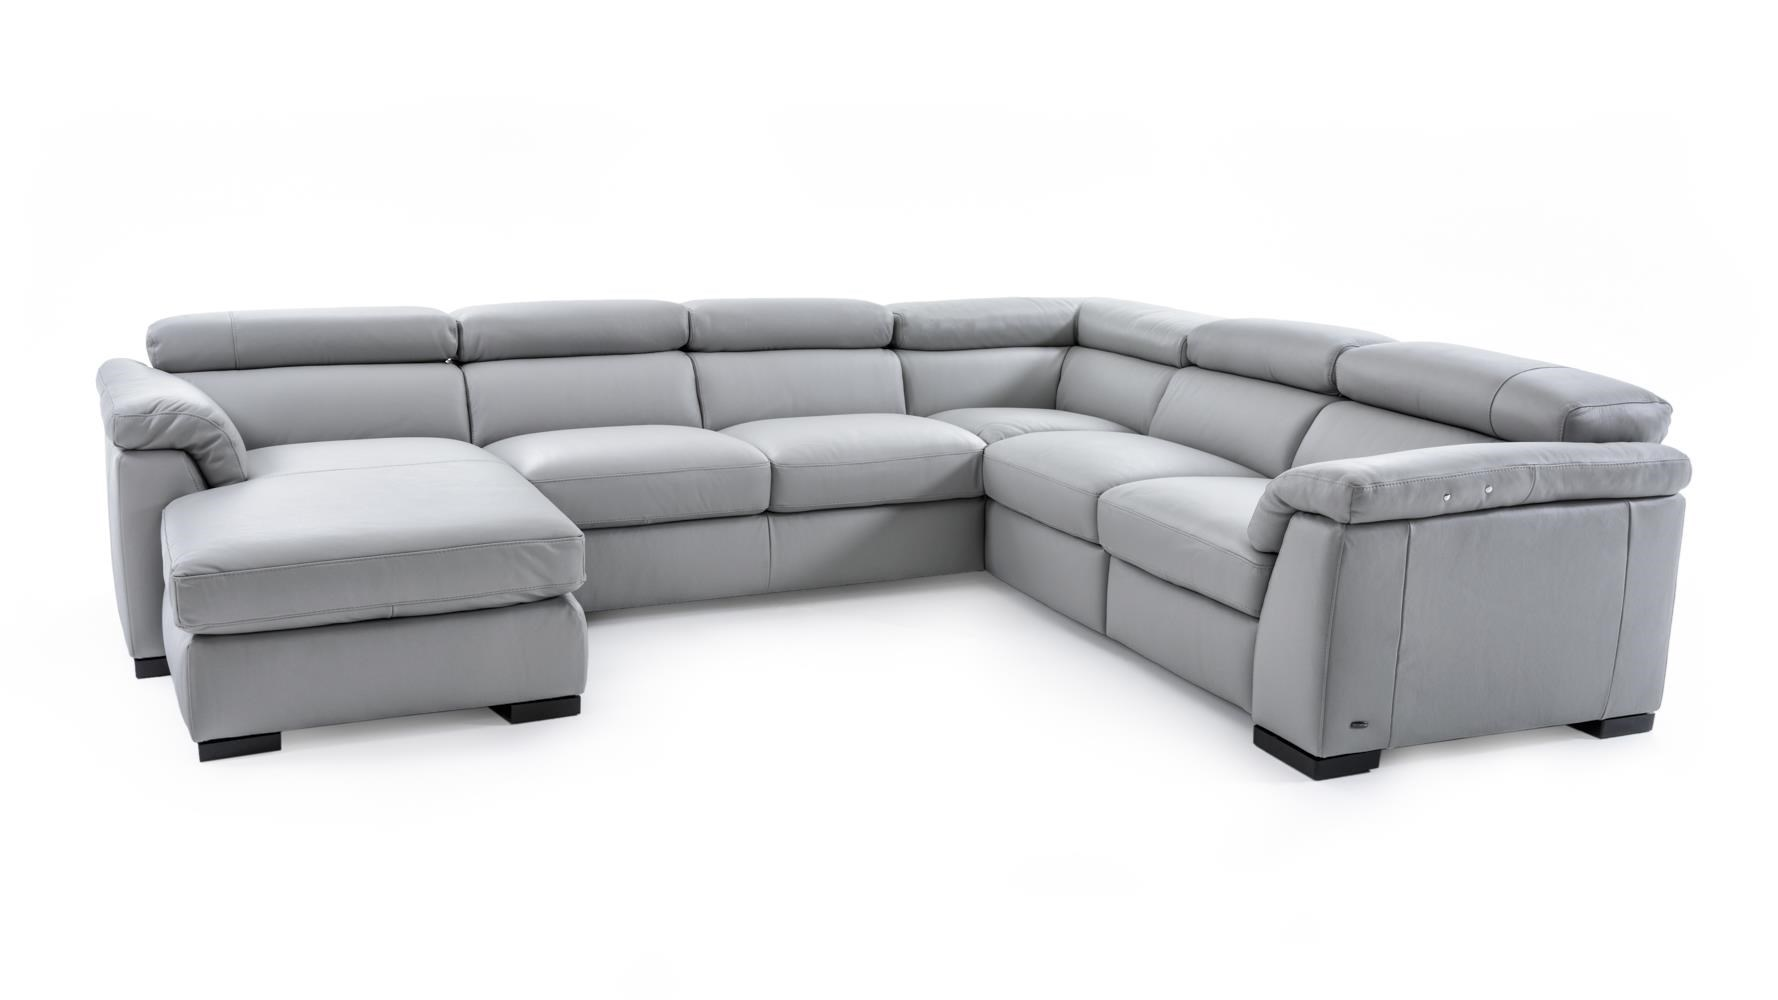 Natuzzi Editions B634 Sectional Sofa w/ Power Recline - Item Number B634 Sect 1  sc 1 st  Baeru0027s Furniture : natuzzi editions sectional - Sectionals, Sofas & Couches